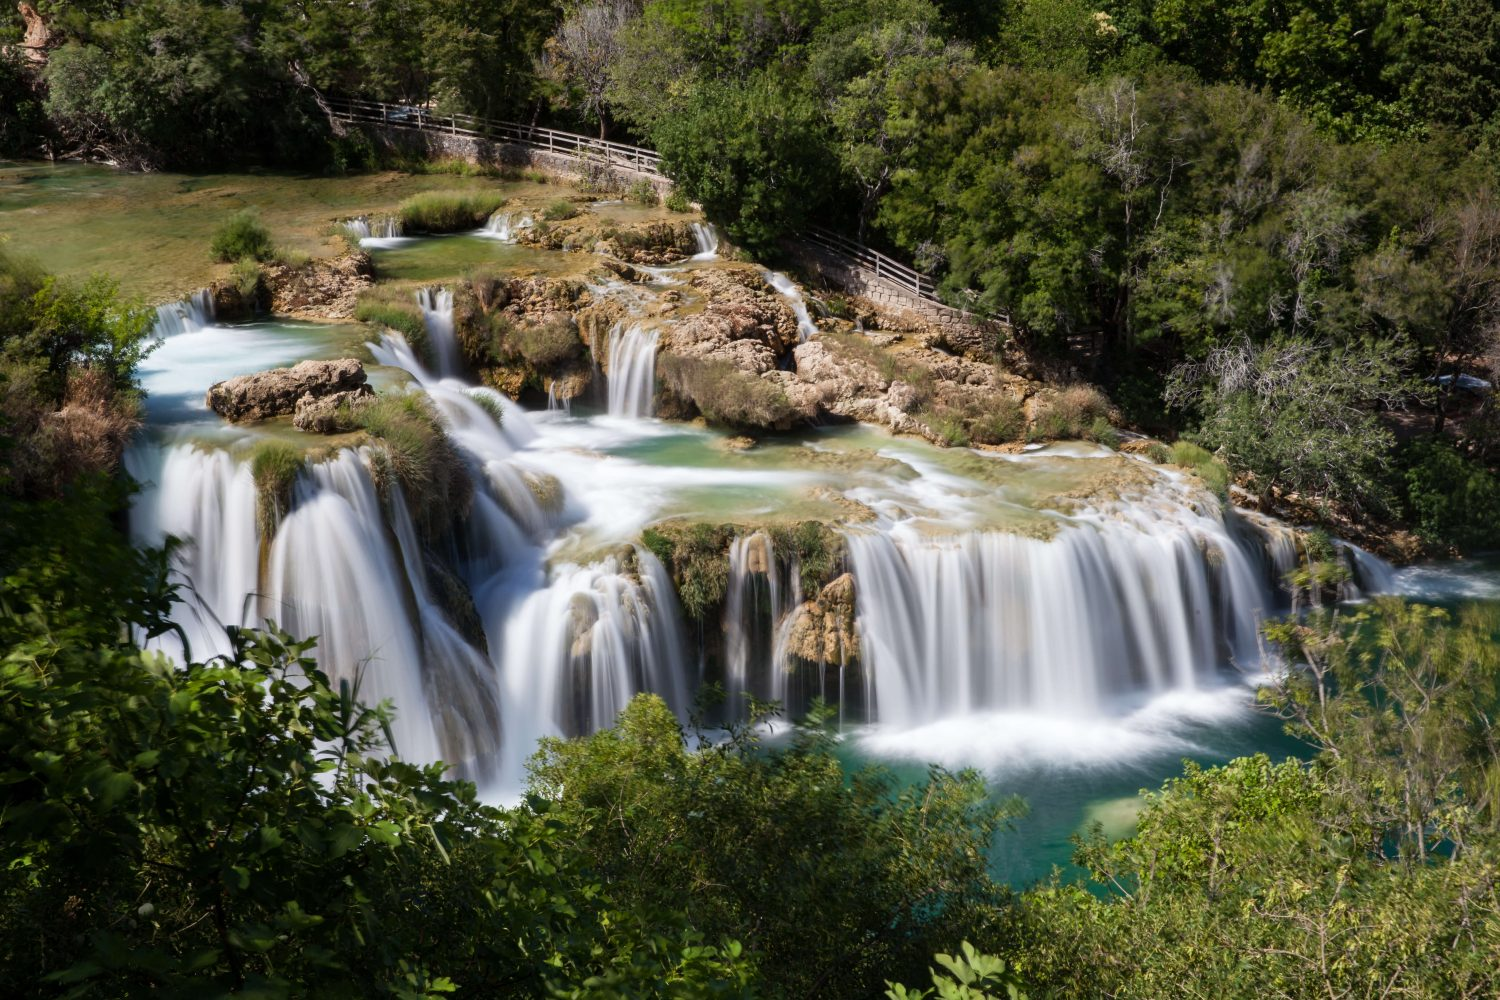 Waterfalls Krka National Park - Skradinski Buk Visovac Island Roški Slap - Nowhere & Everywhere - Sustainable Eco Green Slow Travel Europe Roadtrip